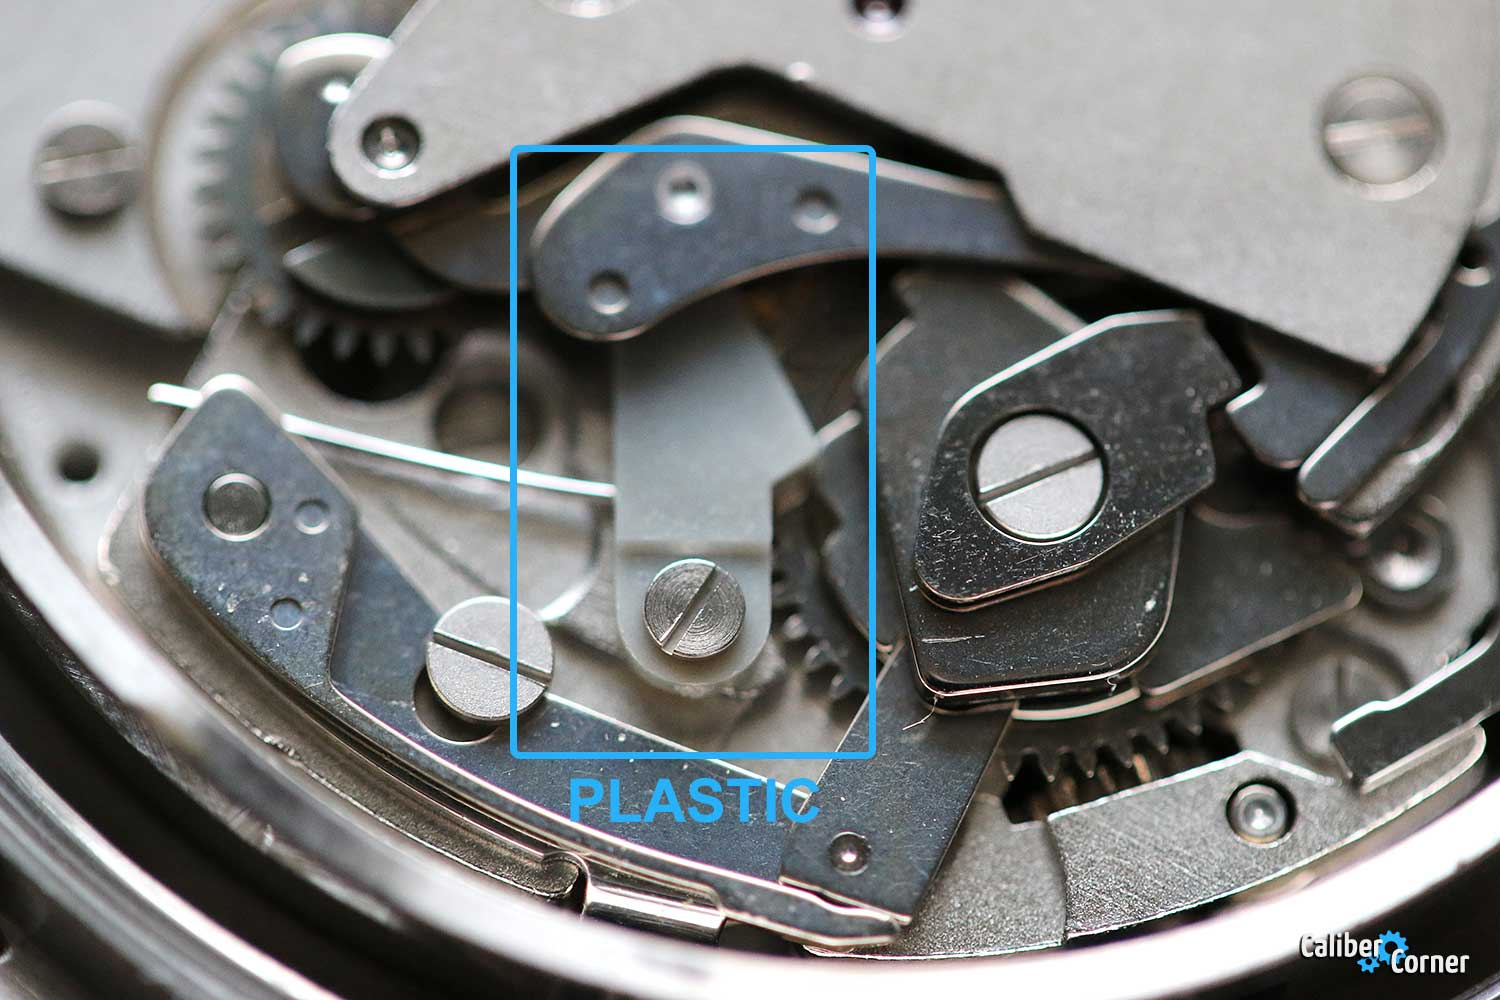 ETA / Valjoux caliber 7760 Plastic Parts